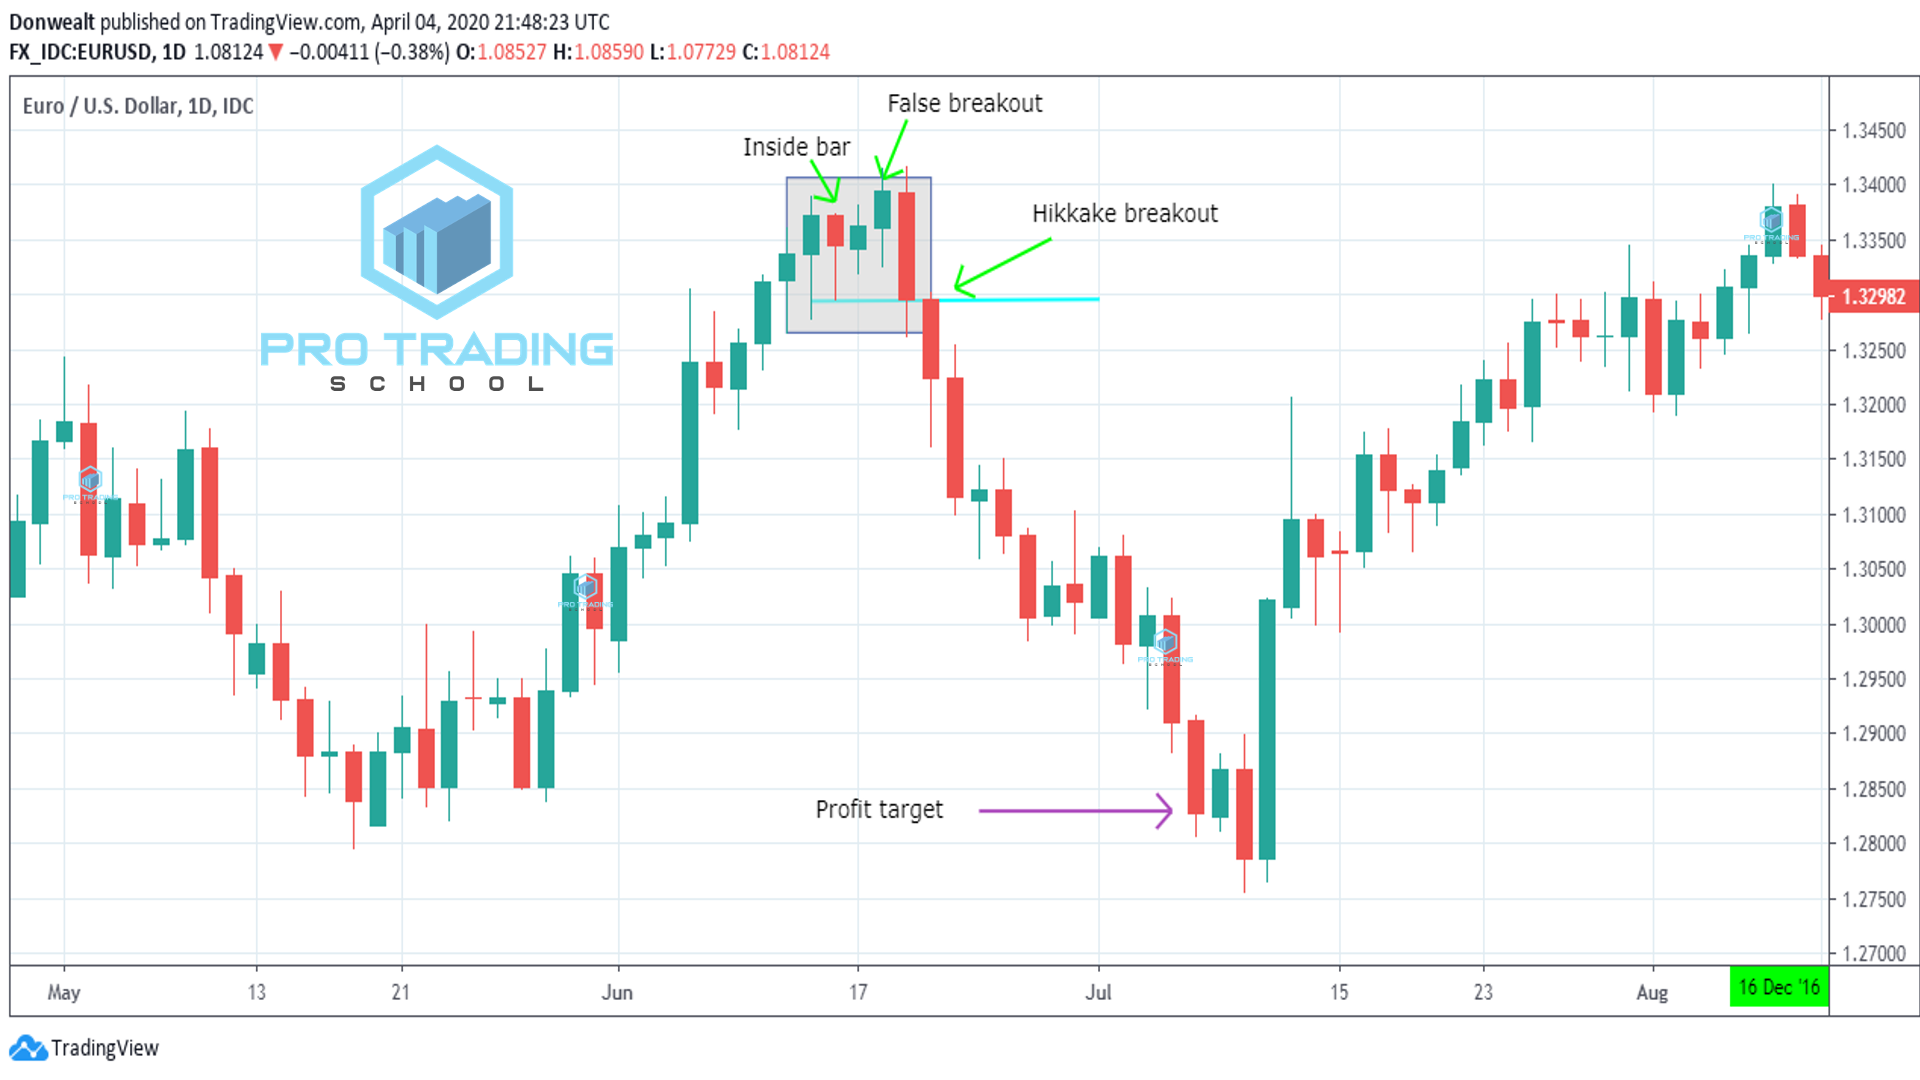 False-breakout-trading-strategies